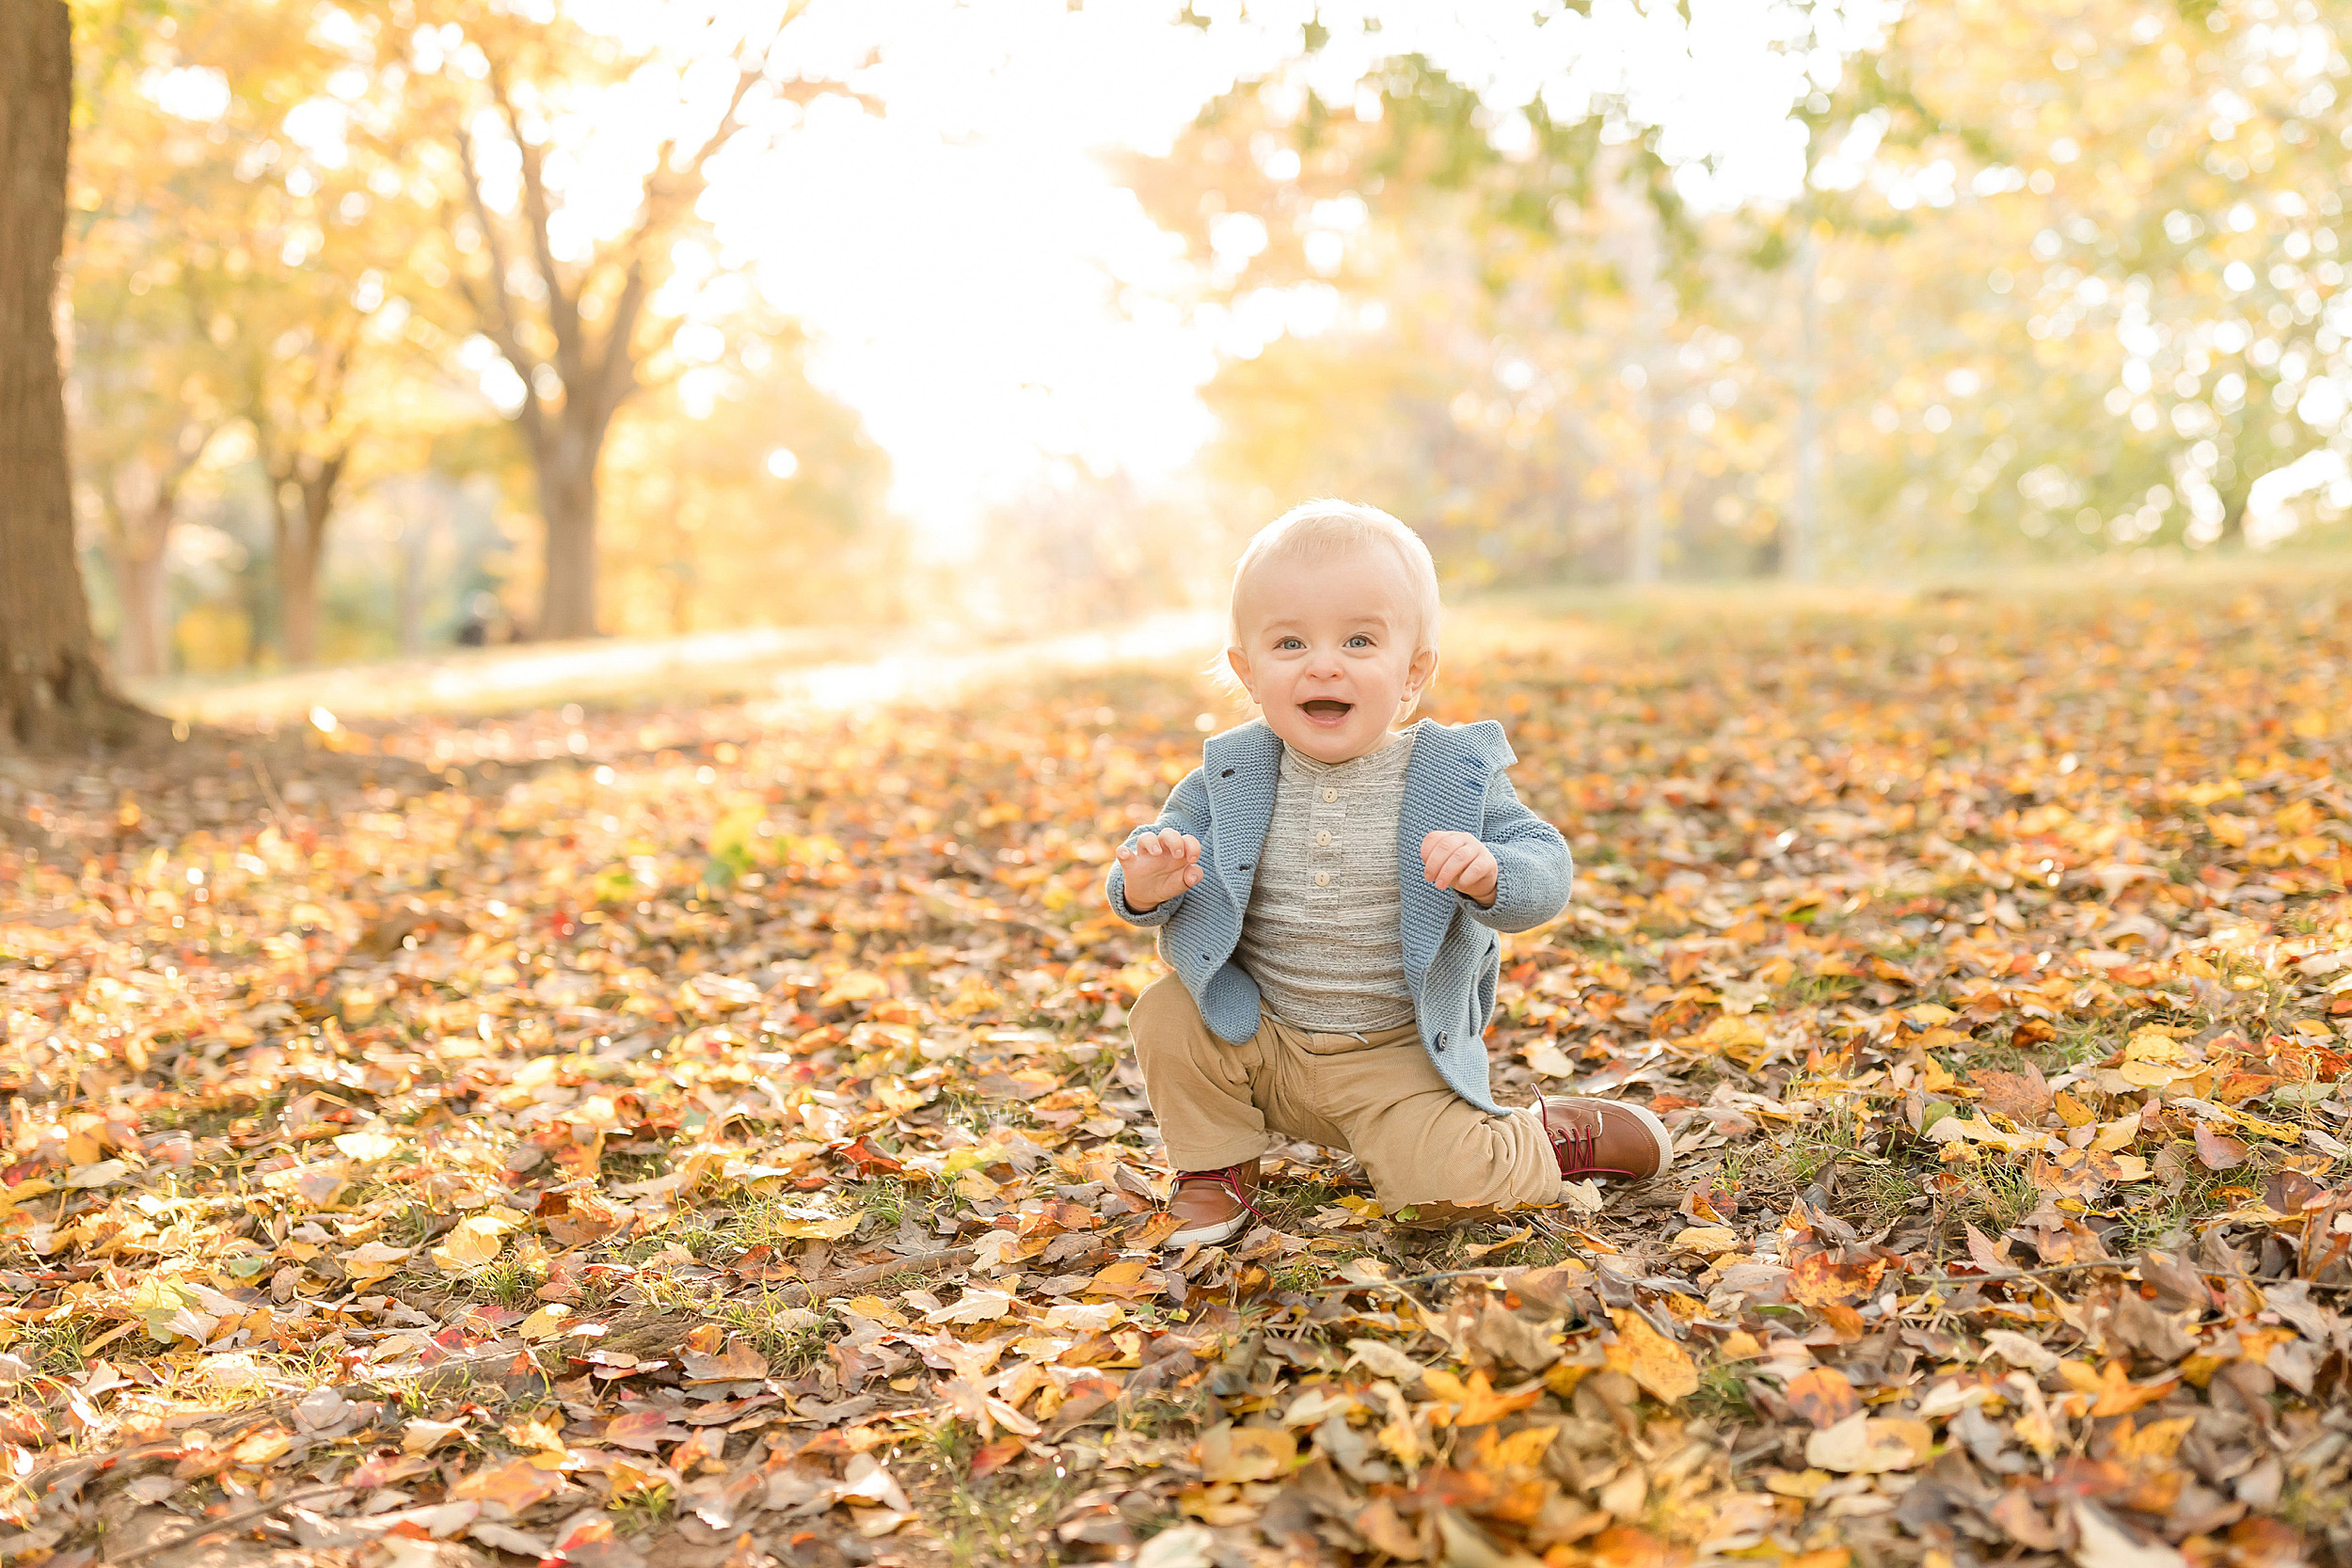 atlanta-brookhaven-decatur-sandy-springs-buckhead-virginia-highlands-west-end-decatur-lily-sophia-photography-ukraine-family-one-year-old-first-birthday-baby-boy-outdoor-fall-cake-smash_1533.jpg